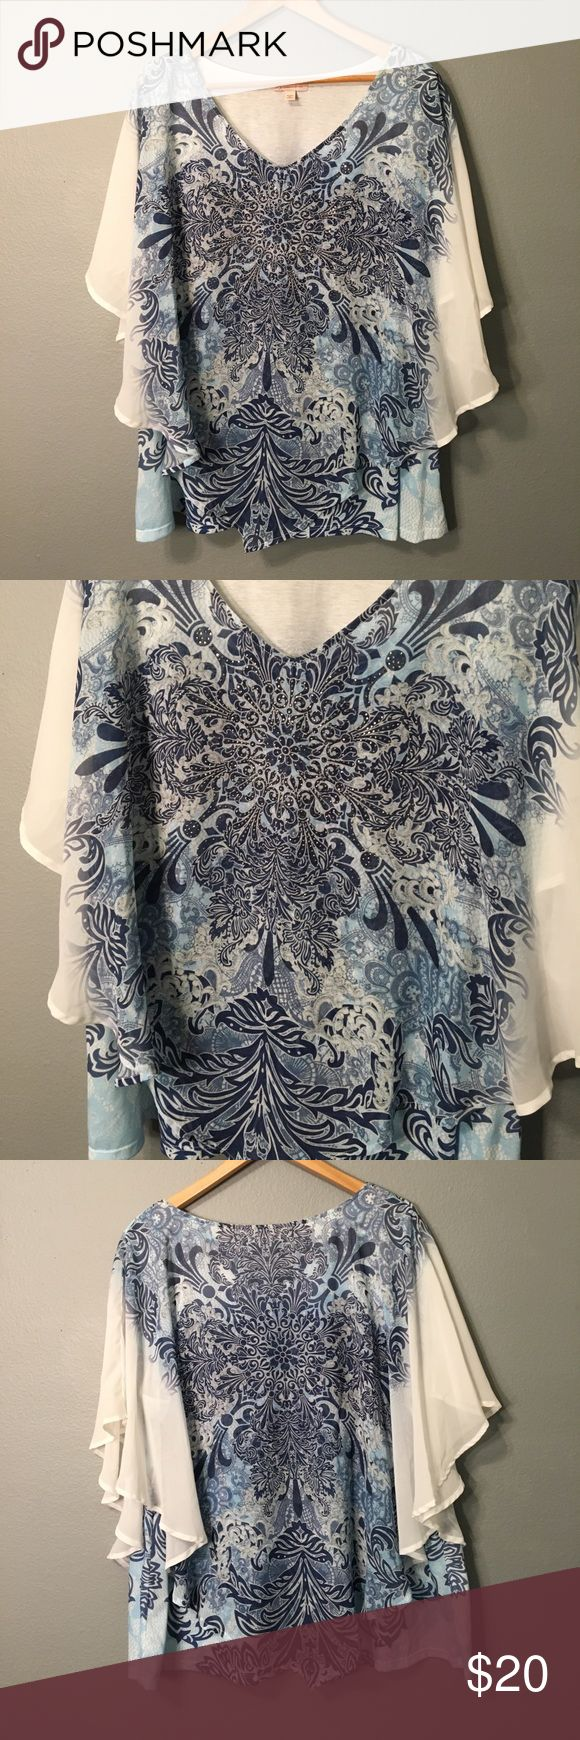 Blue and white blouse with floral prints Gorgeous blouse with semi sheer overlay with butterfly sleeves. Tops Blouses